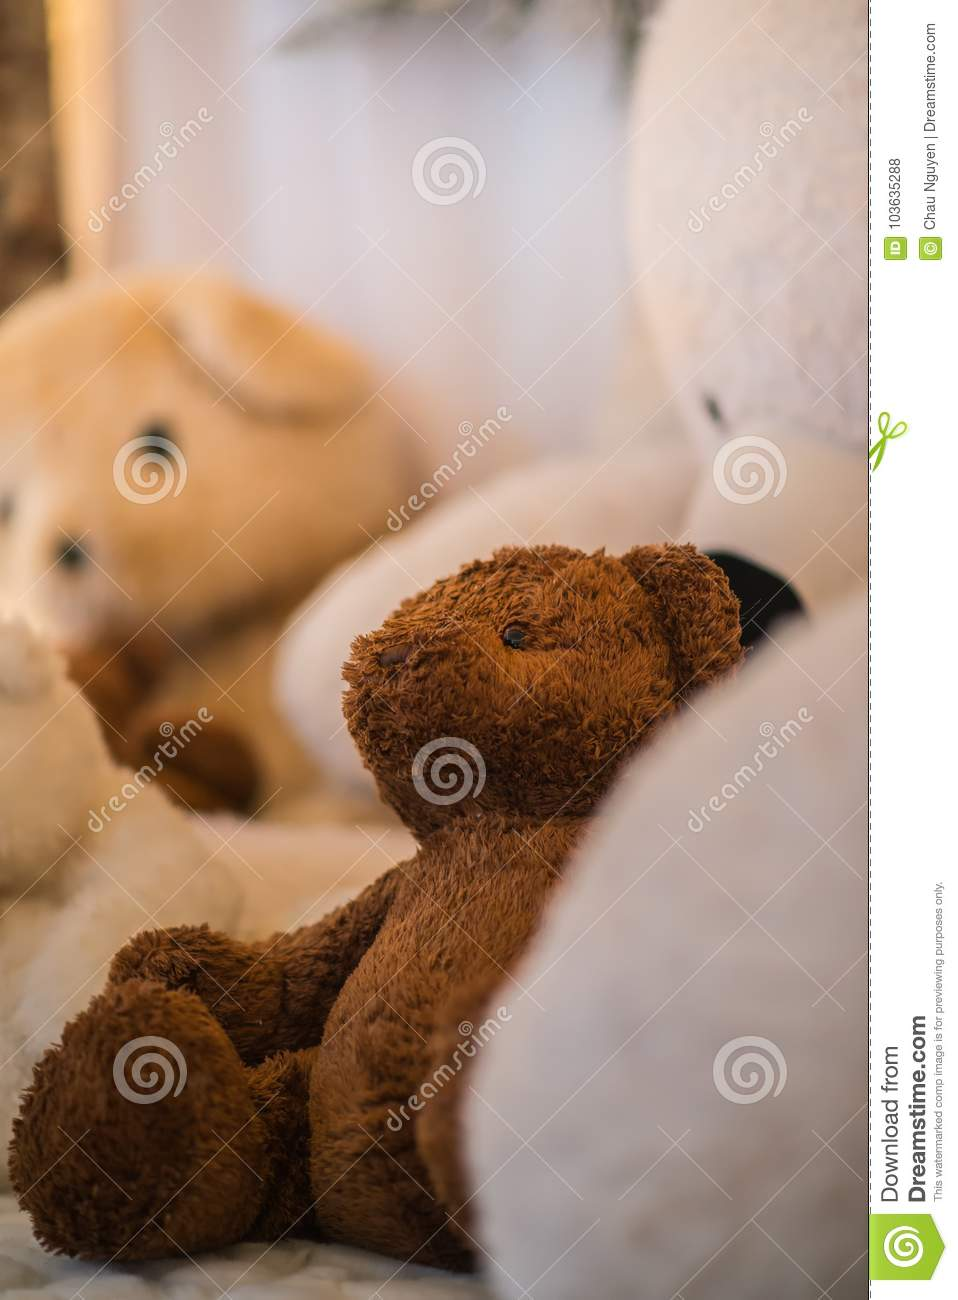 Closeup brown teddy bears lays inside white stuffted bears indoor under warmth lights. Cozy holidays